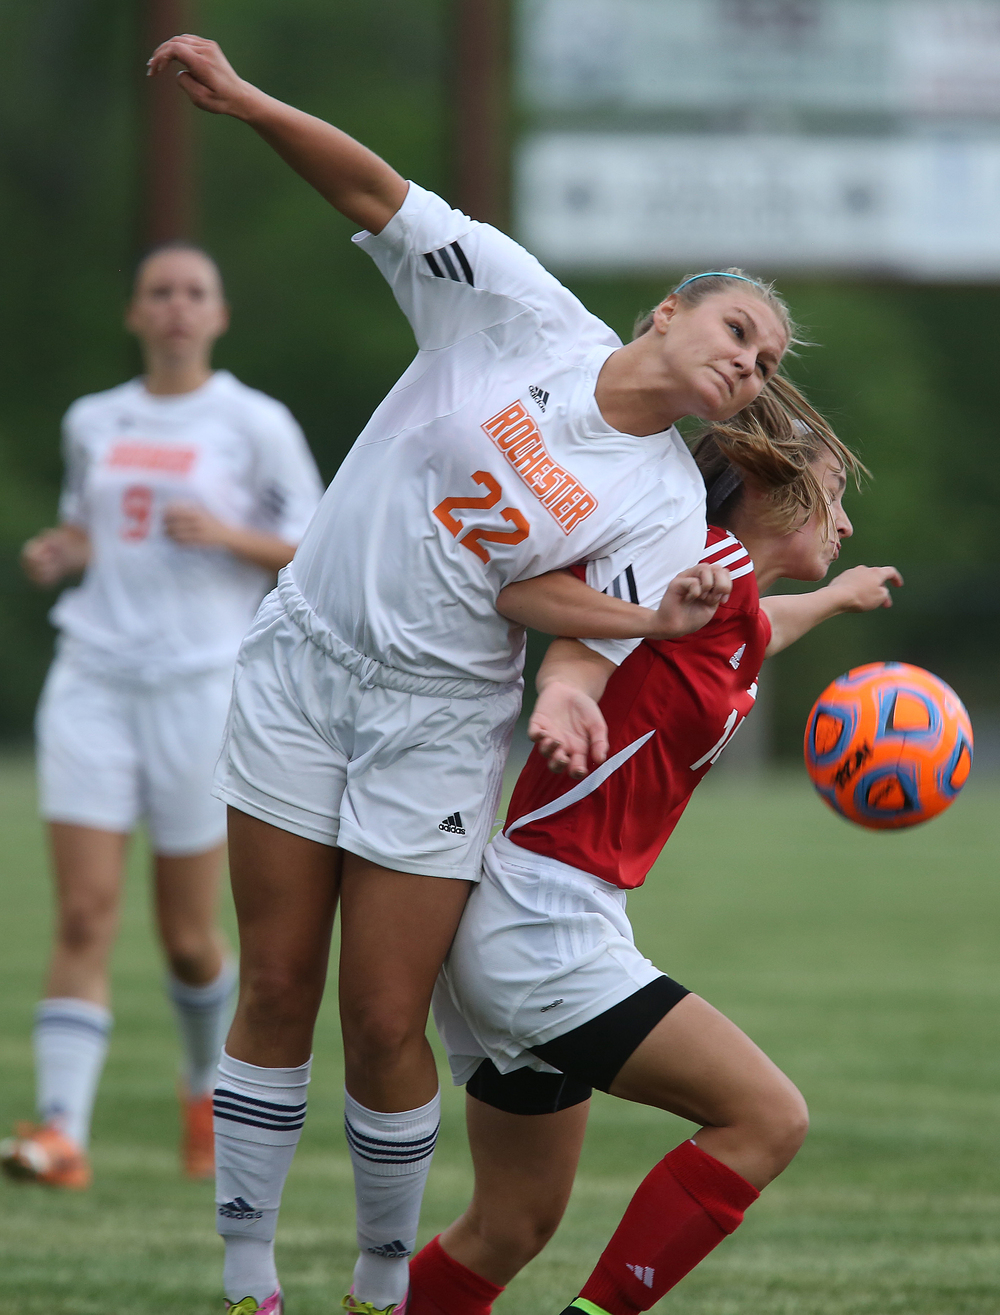 Rochester player Mandy Yeck and Glenwood's Demi Dixon battle for the ball during first period action. With neither team scoring, a weather delay with 8:45 remaining in the game forced the suspension of play between Rochester and Chatham Glenwood in girls high school soccer action at Rochester Elementary School on Thursday evening, May 7, 2015. David Spencer/The State Journal-Register